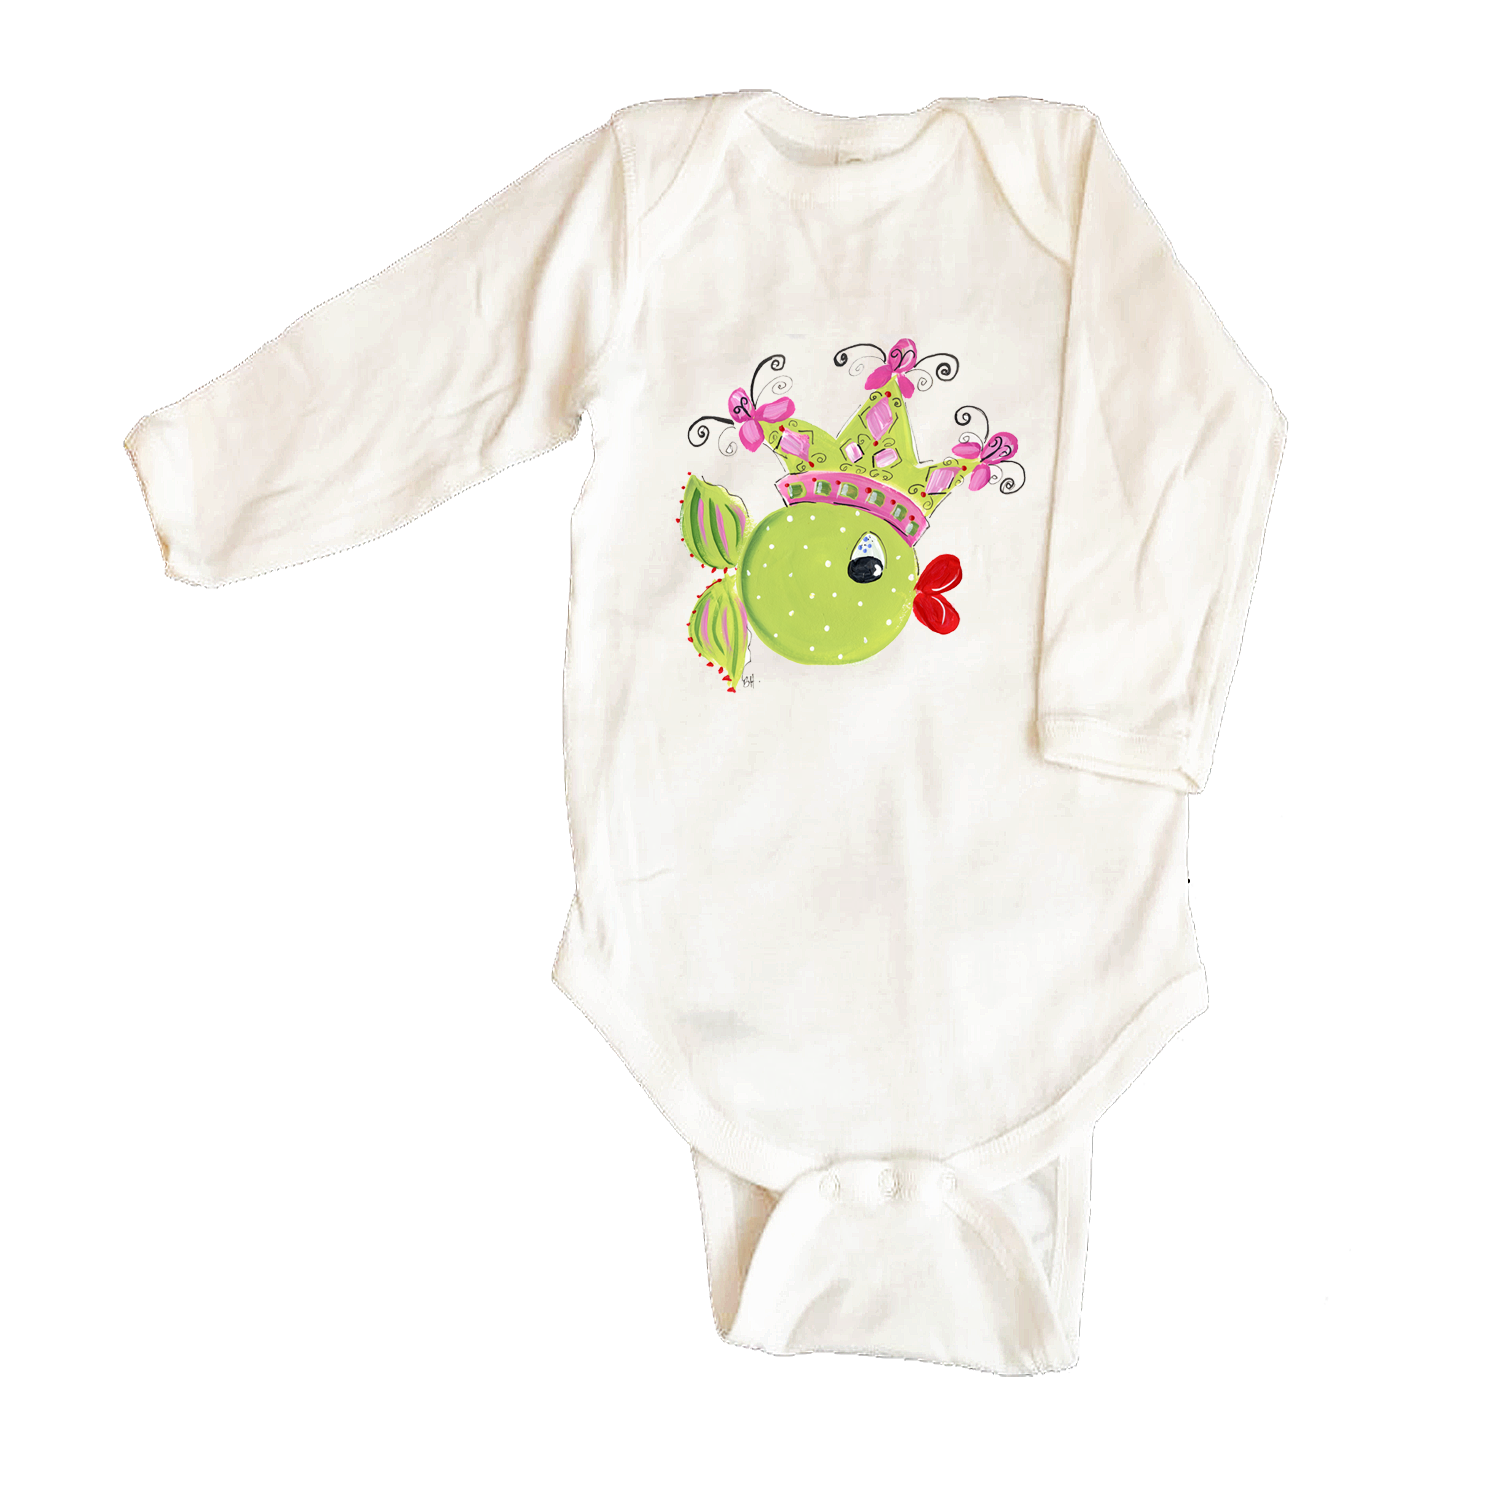 Bodysuit Long Sleeve  443-Princess-Fish-&-Crown